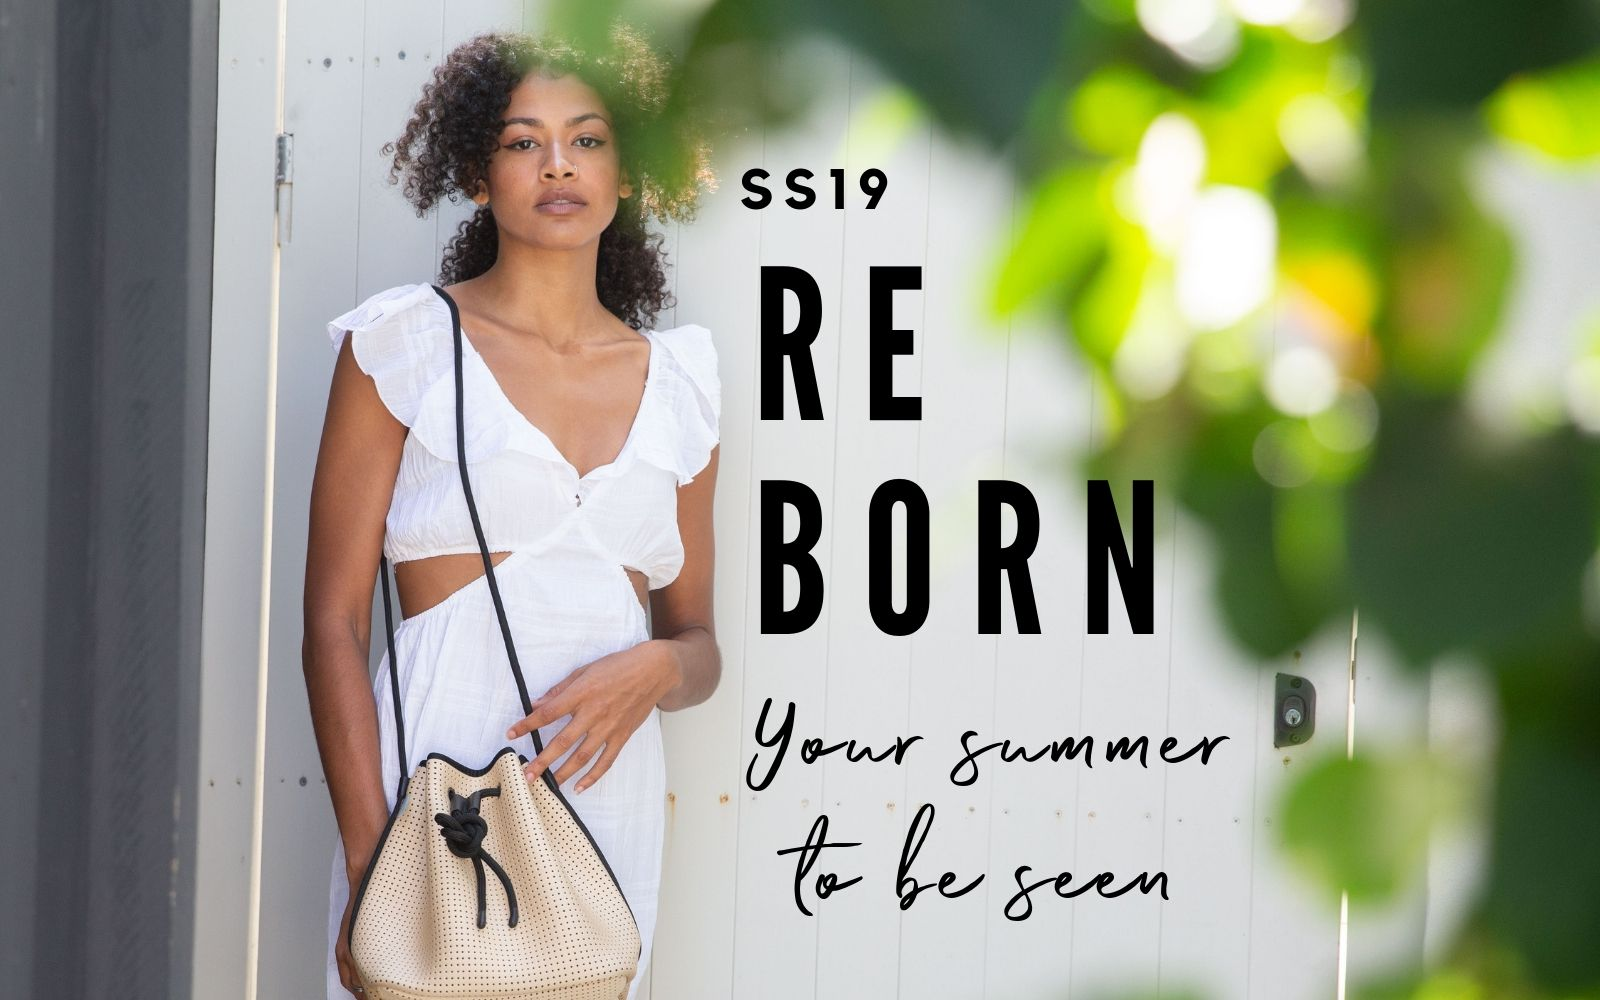 SS19 Collection - Reborn - Chuchka